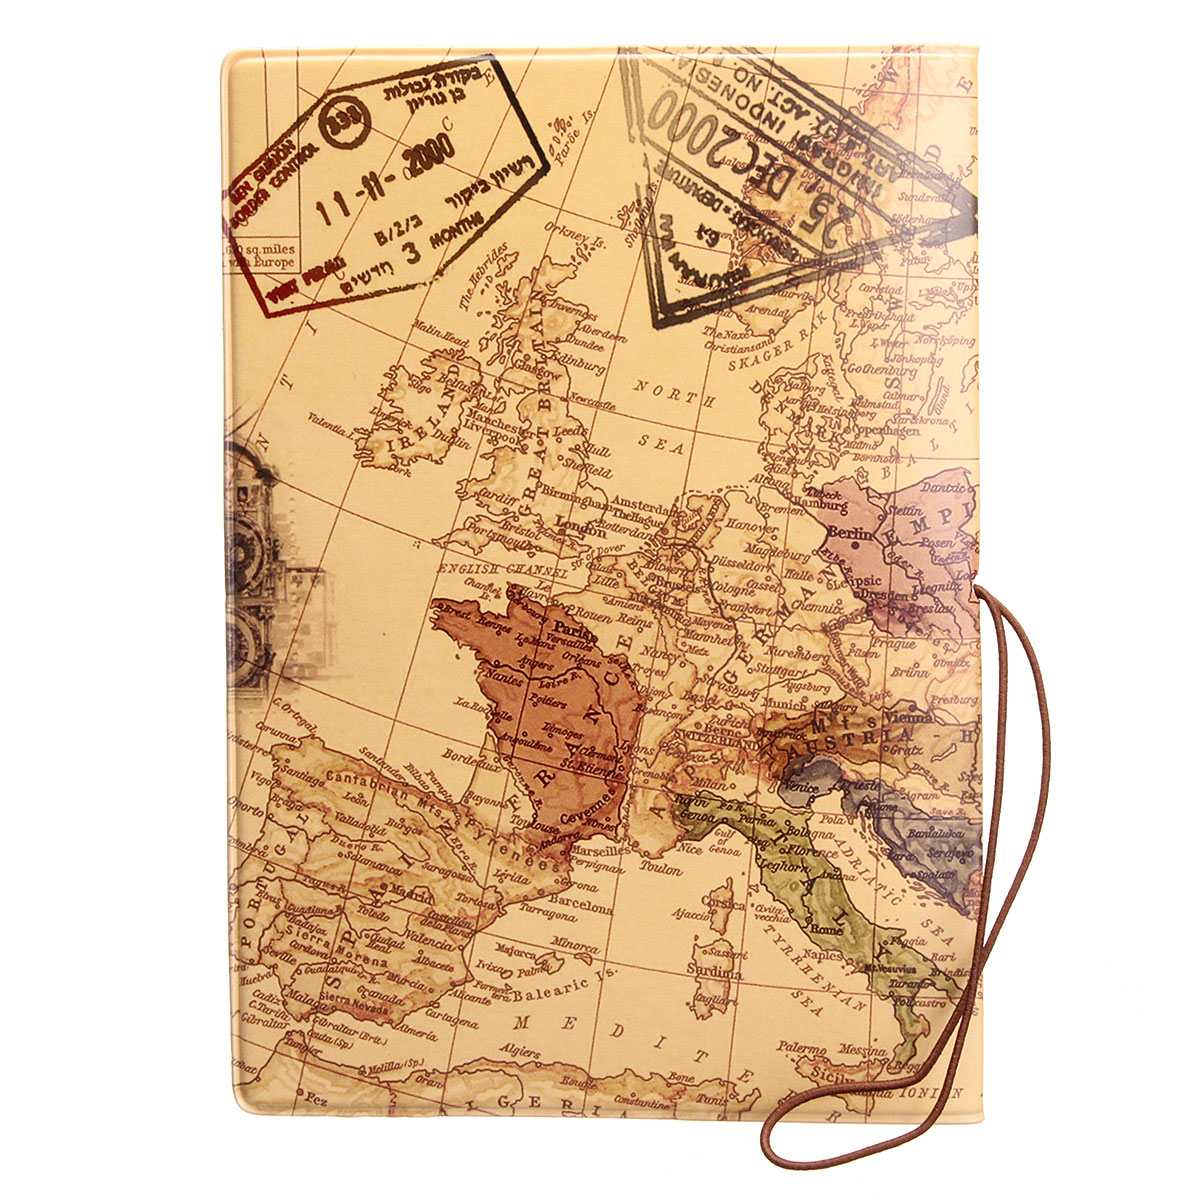 Philippines leather world map passport holder organizer travel leather world map passport holder organizer travel card case document cover hot coffee gumiabroncs Image collections